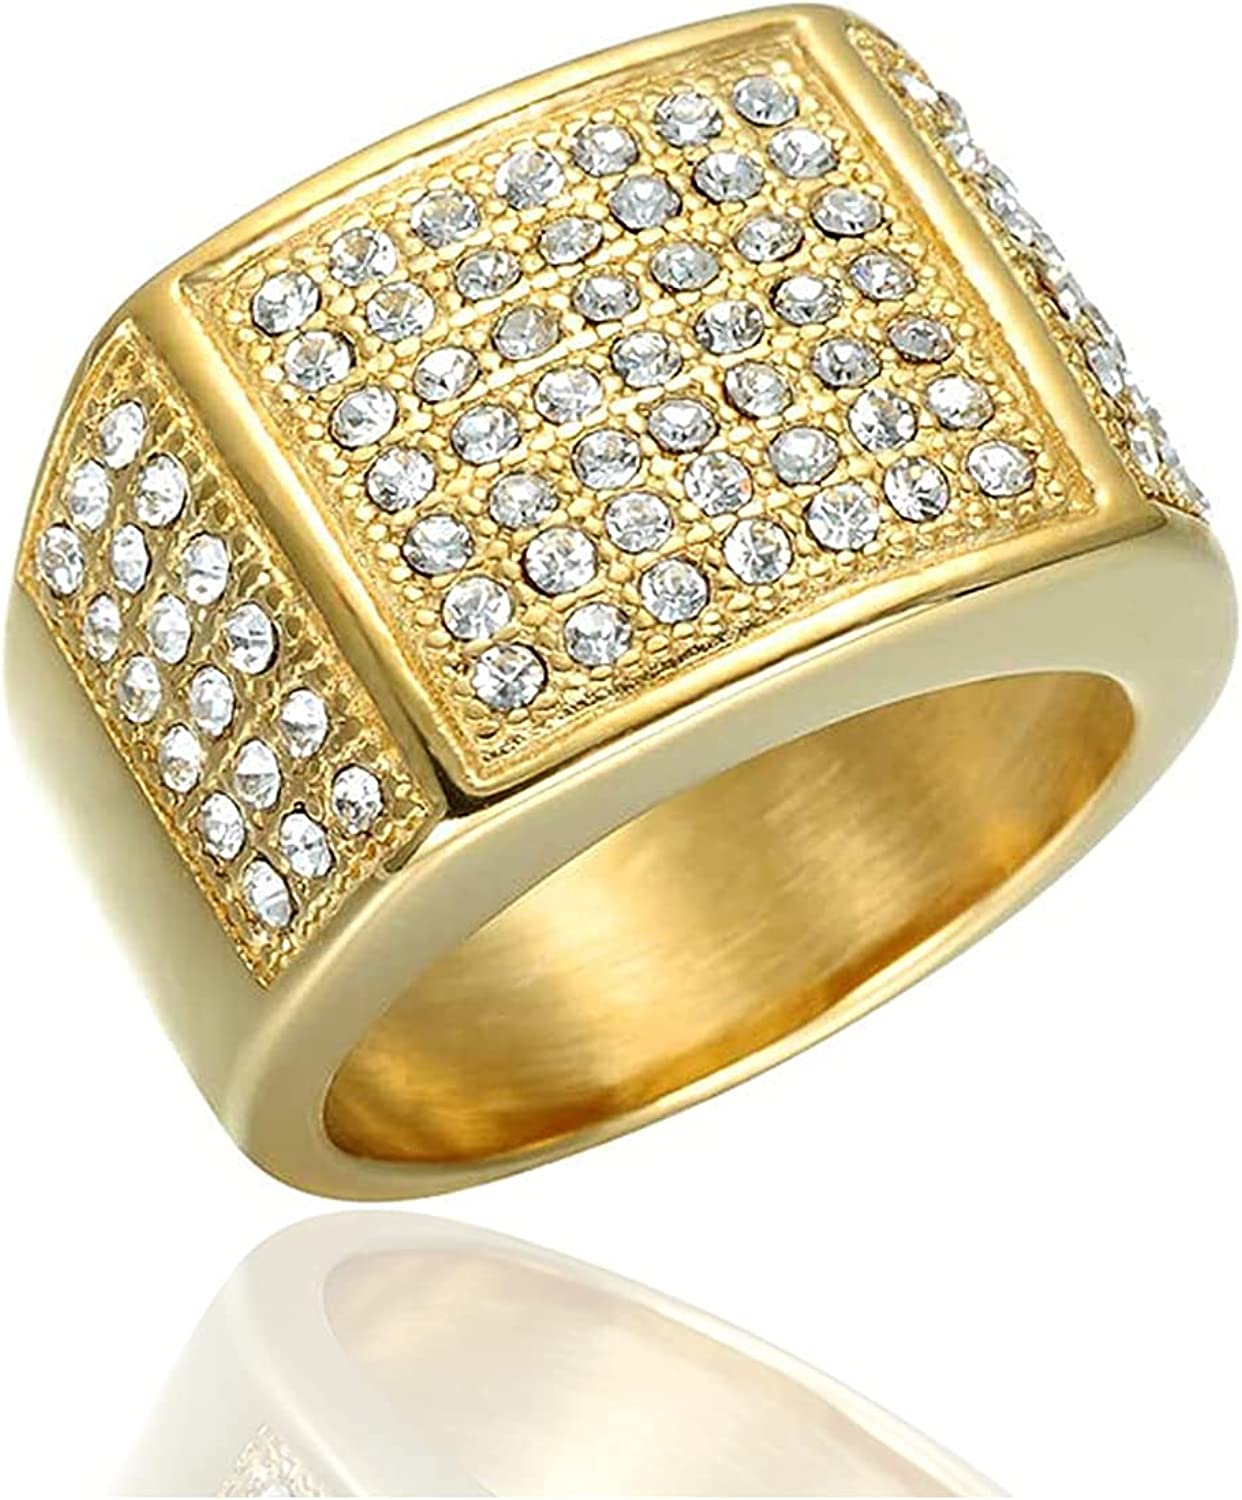 Xusamss Hip Hop Plated 18K Gold Stainless Steel Square Crystal Ring